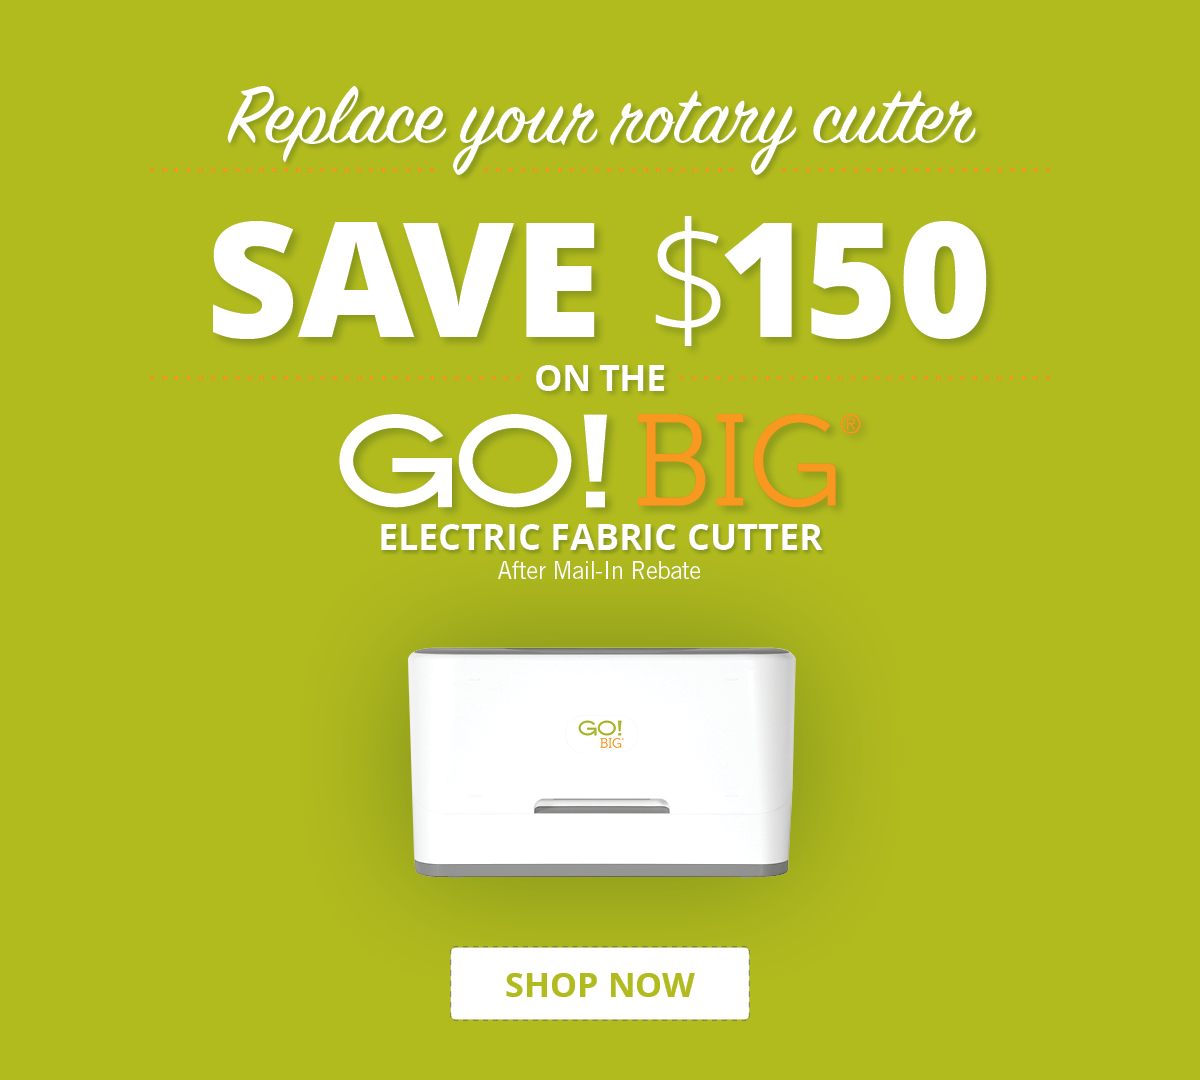 Replace Your Rotary Cutter | Save $150 on the GO! Big Electric Fabric Cutter